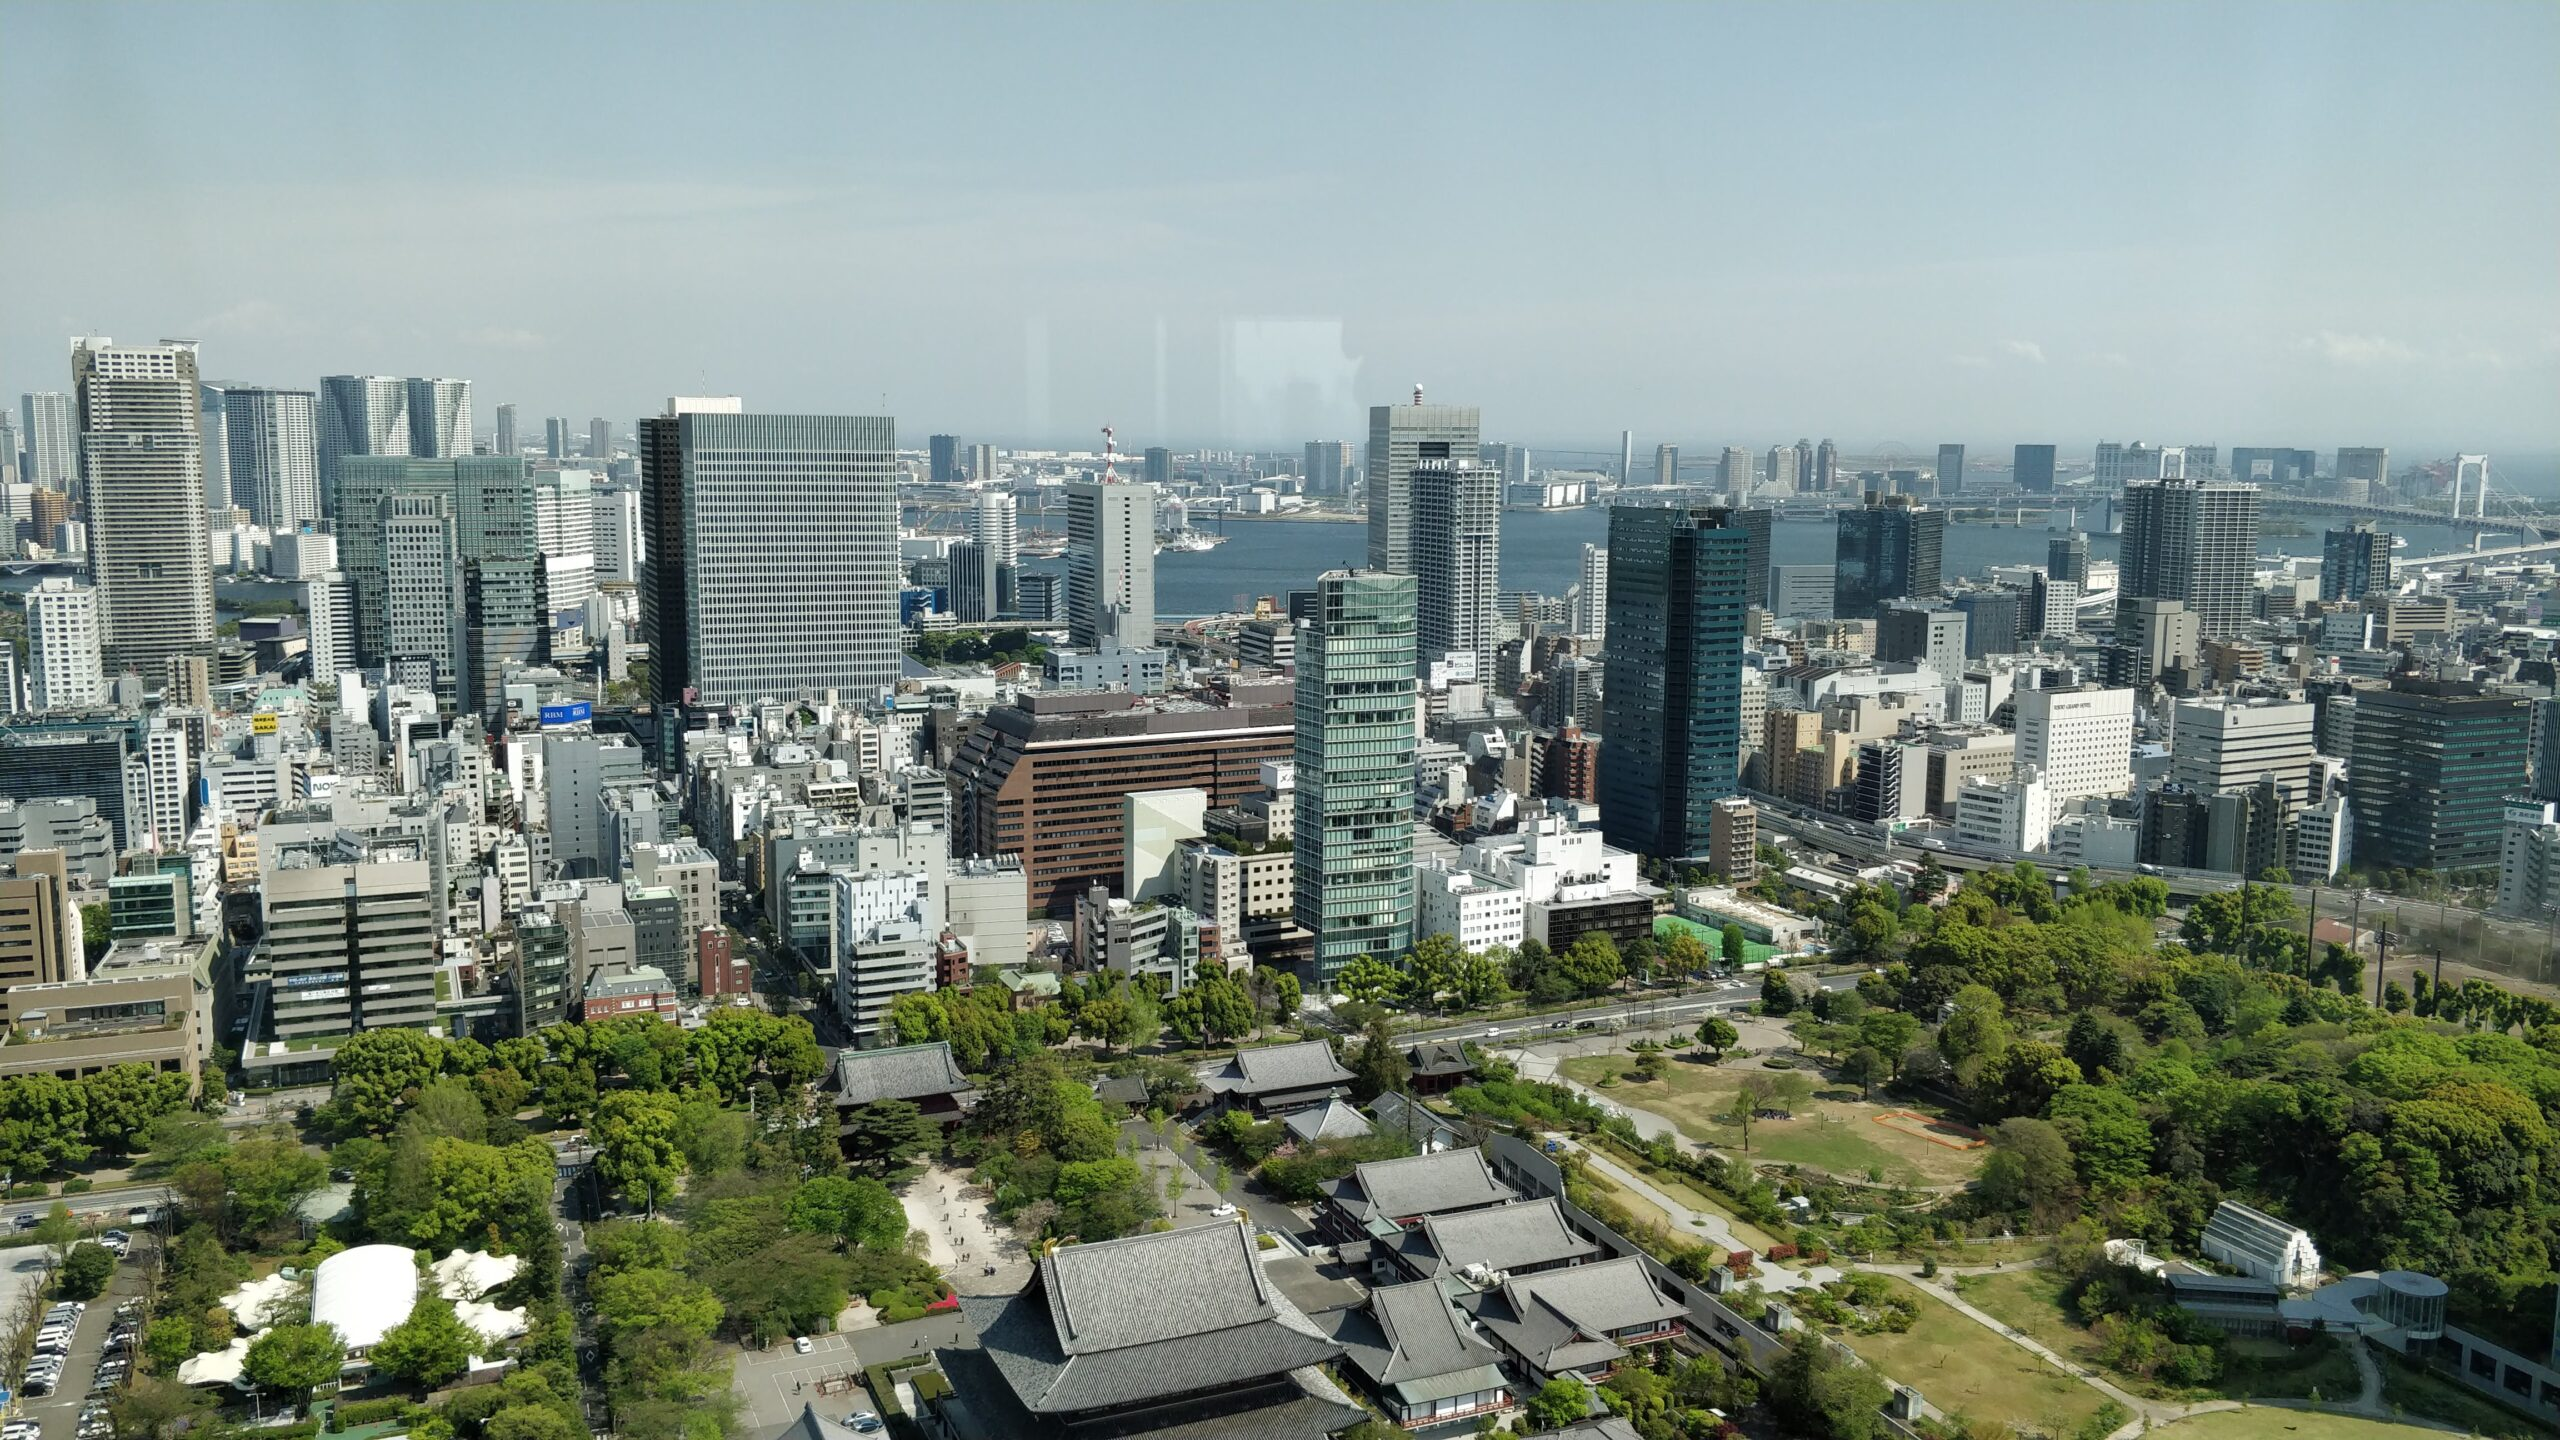 Tokyo from the top of the Tokyo Tower